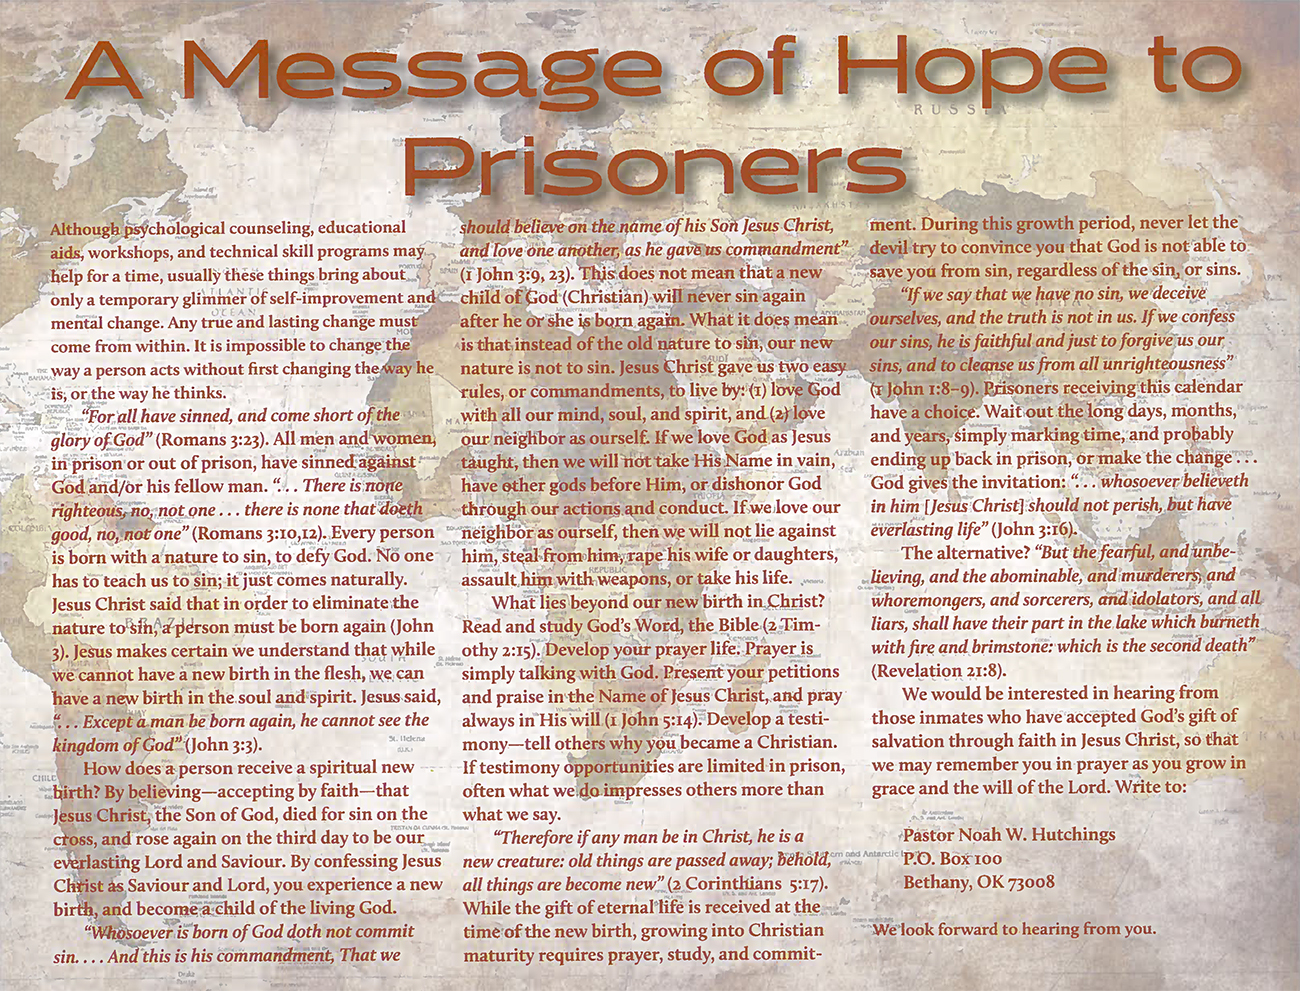 2015 Prophecy Calendar: A Message of Hope to Prisoners